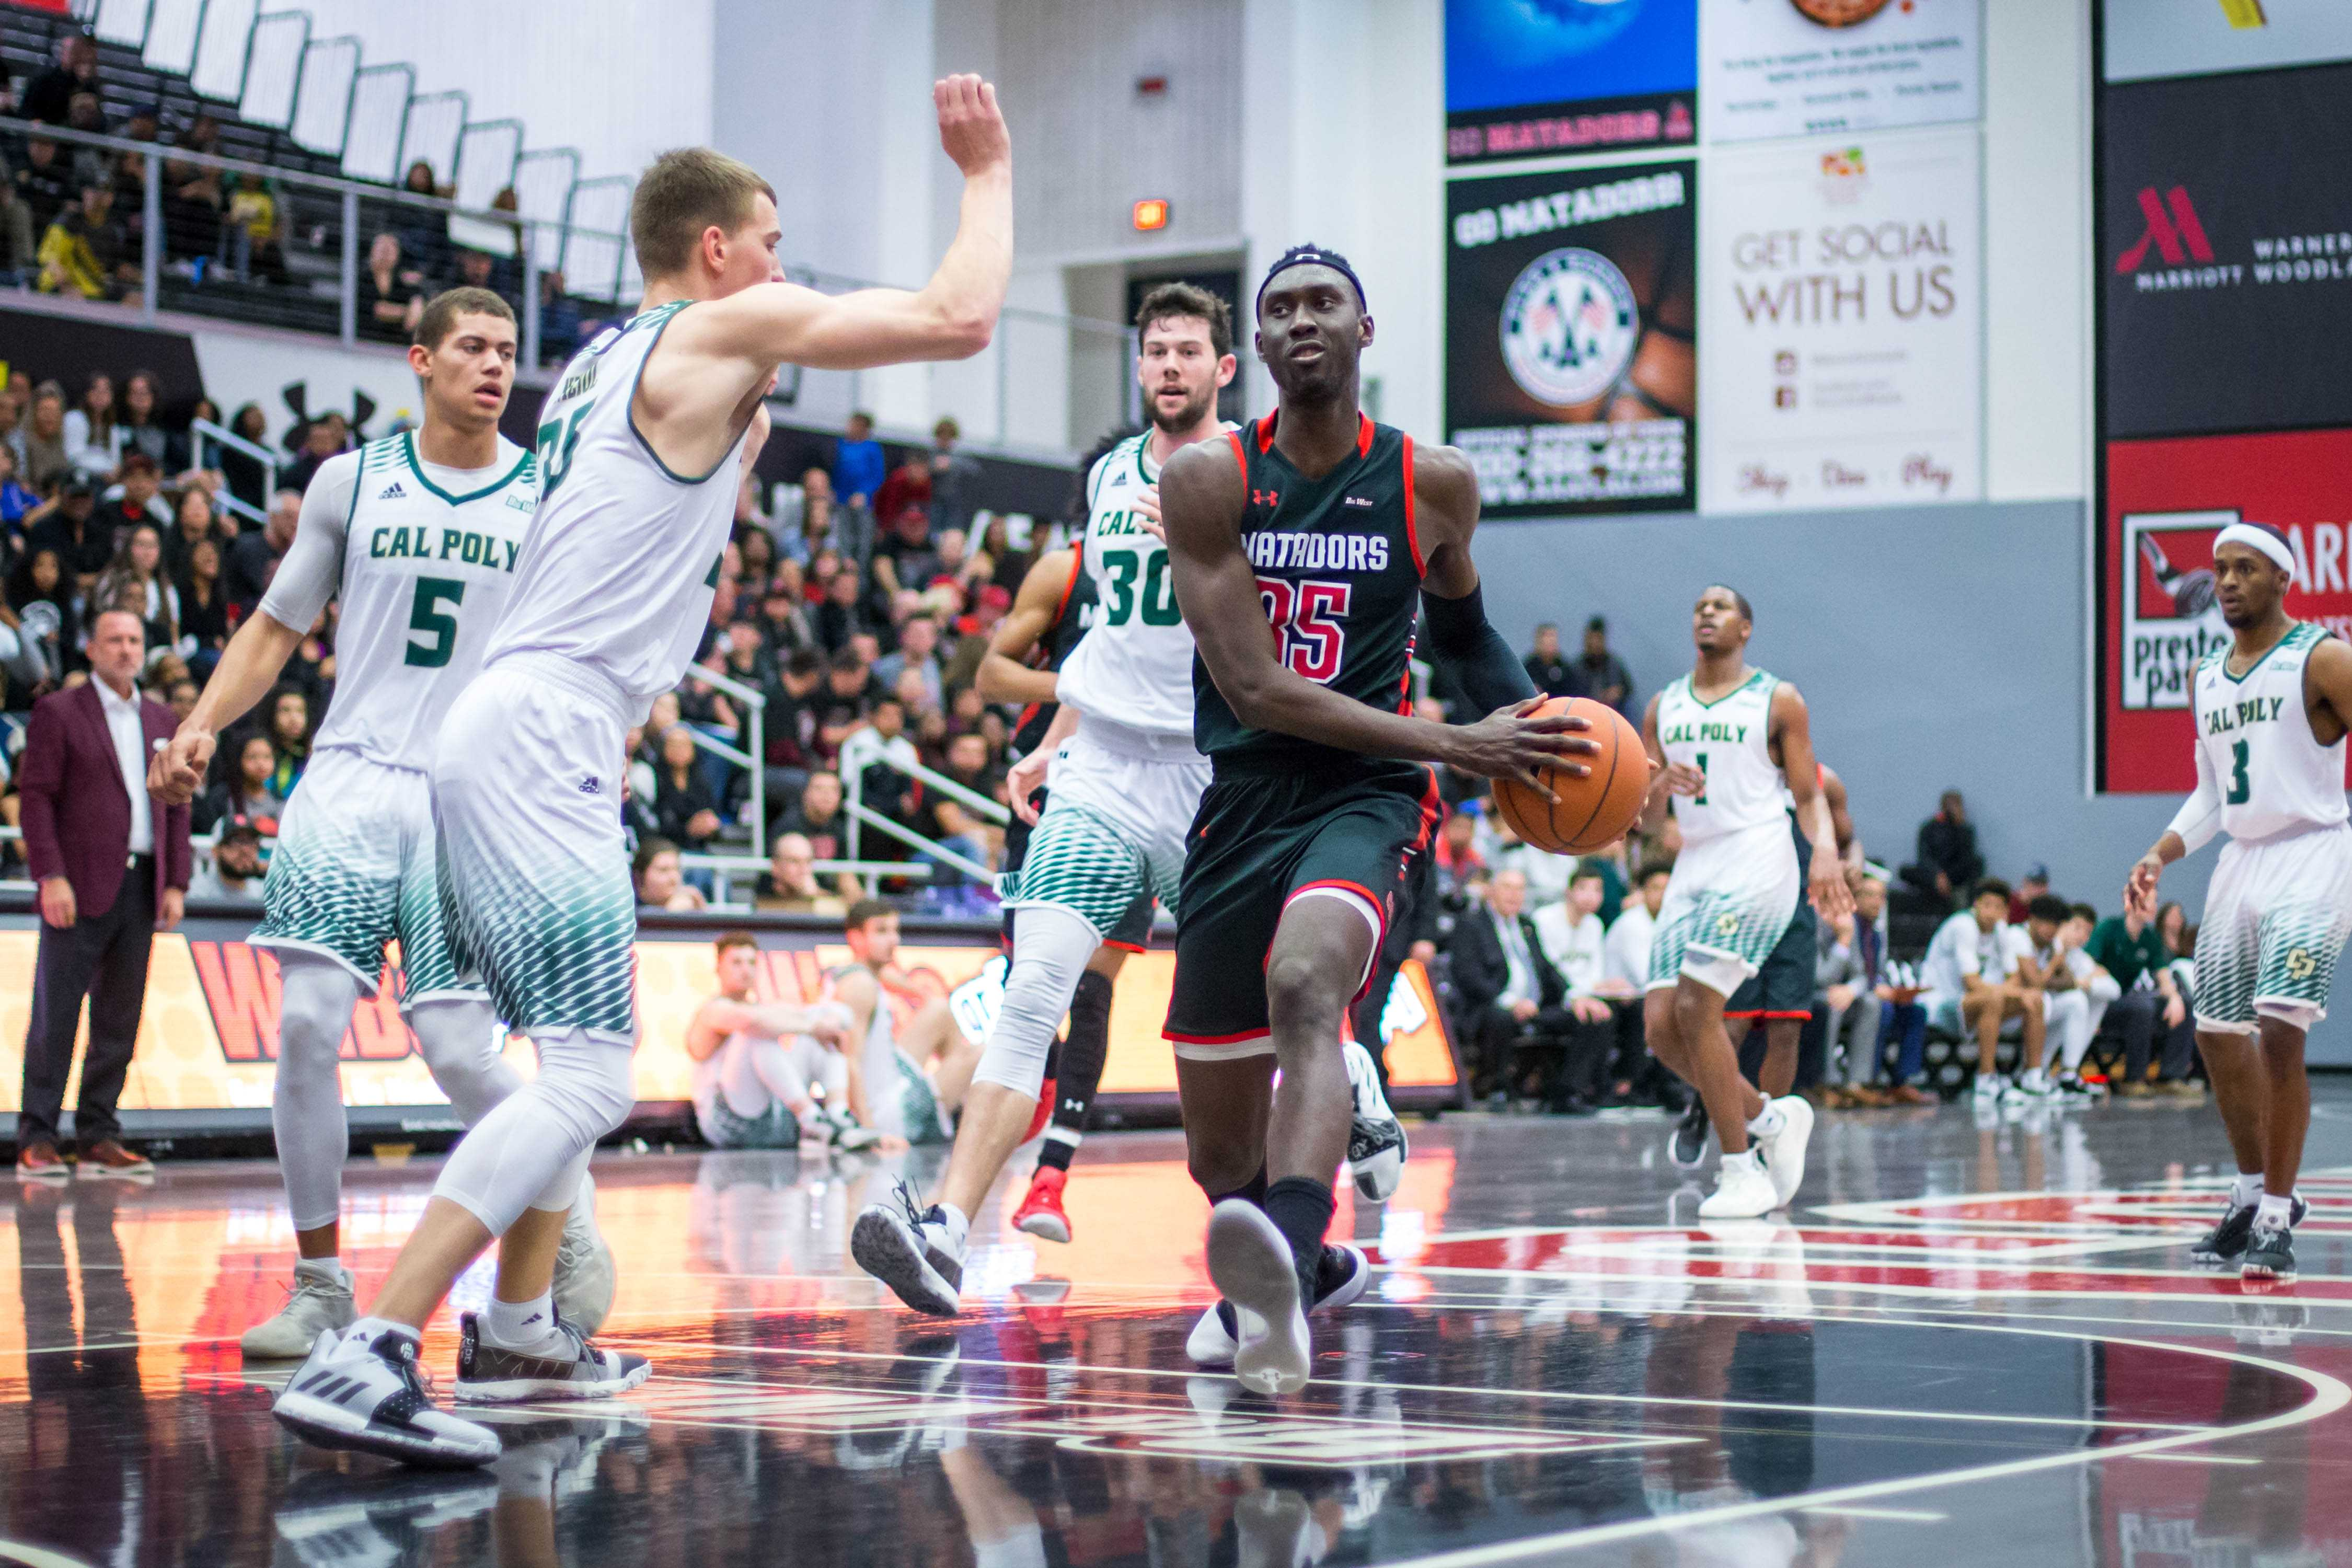 A CSUN Men's basketball player in black jersey trying to go around a defender tp the basket.